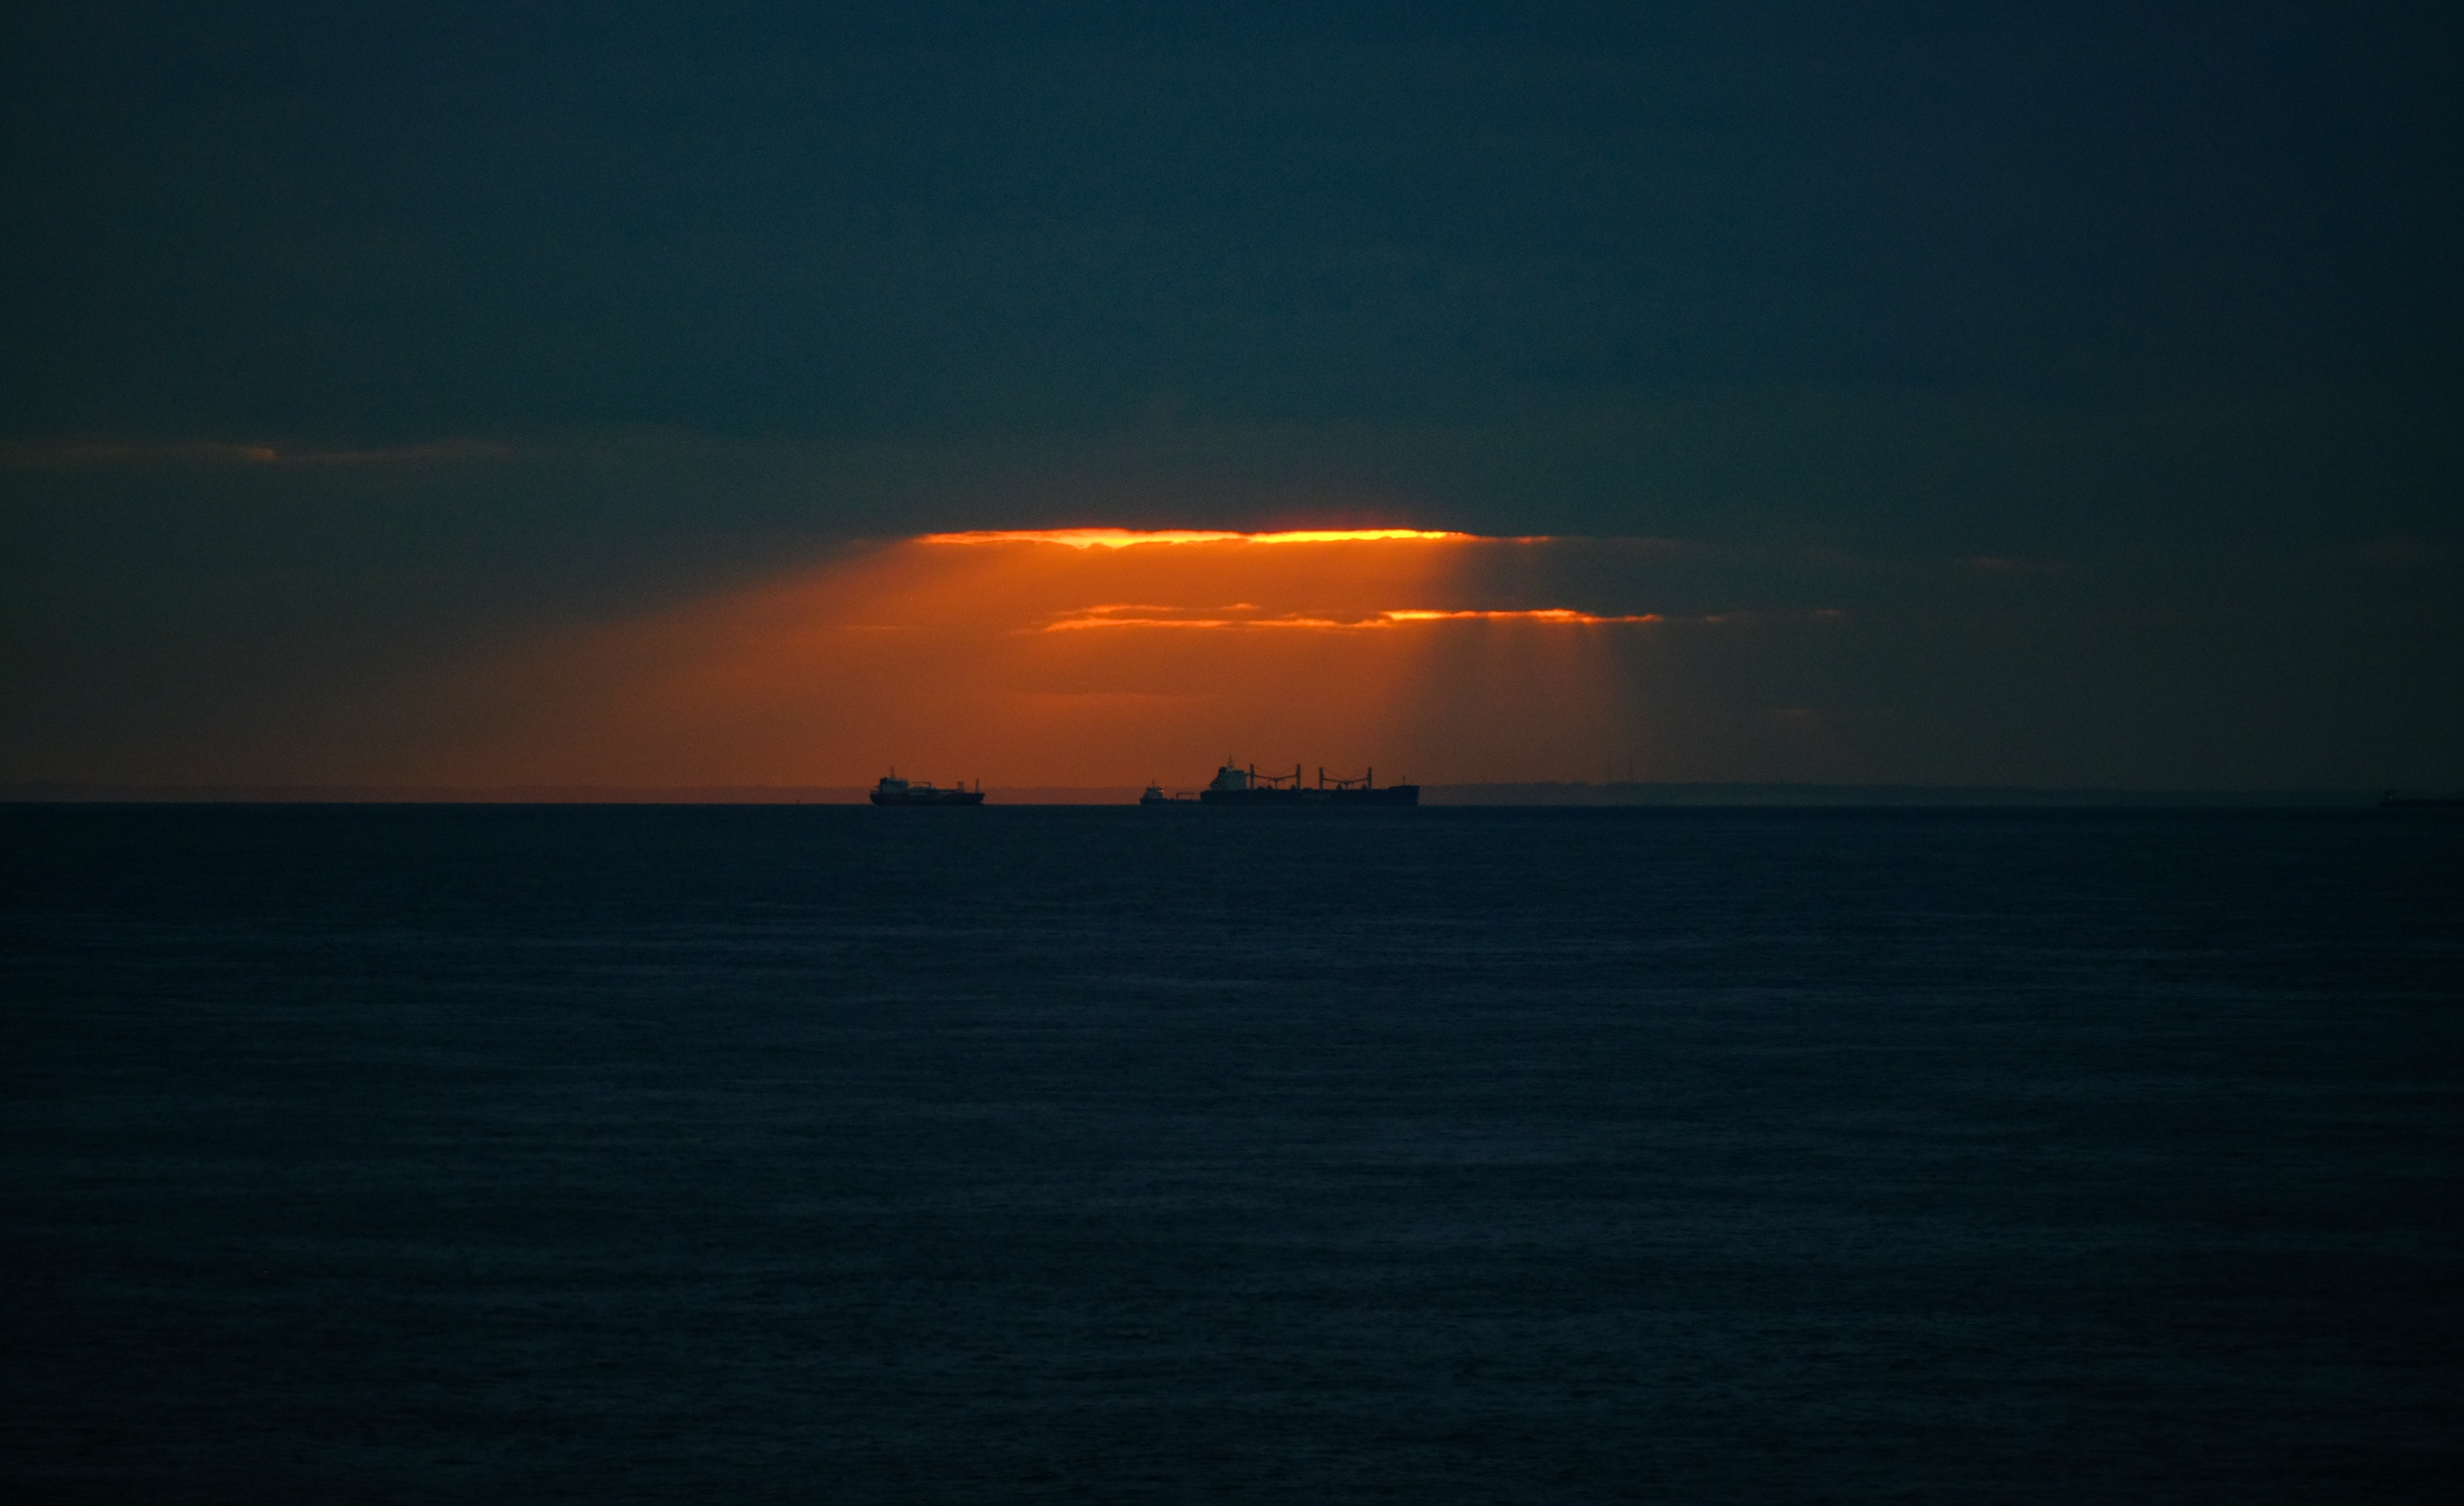 silhouette of two ships on body of water